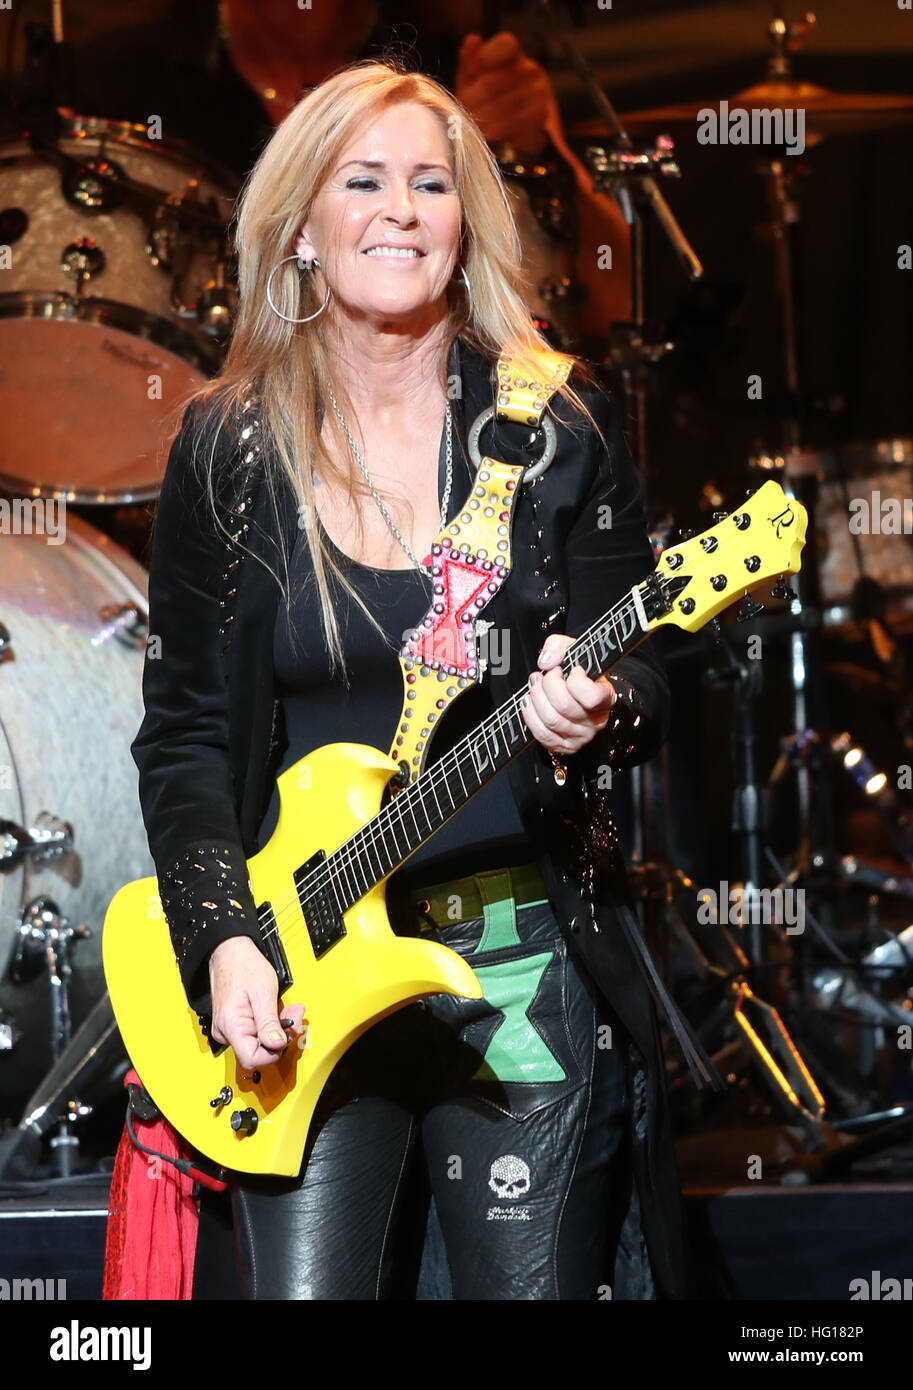 Lita ford performs during bret michaels the new year s party starts now tour at the florida theatre in jacksonville florida on december 30 2016